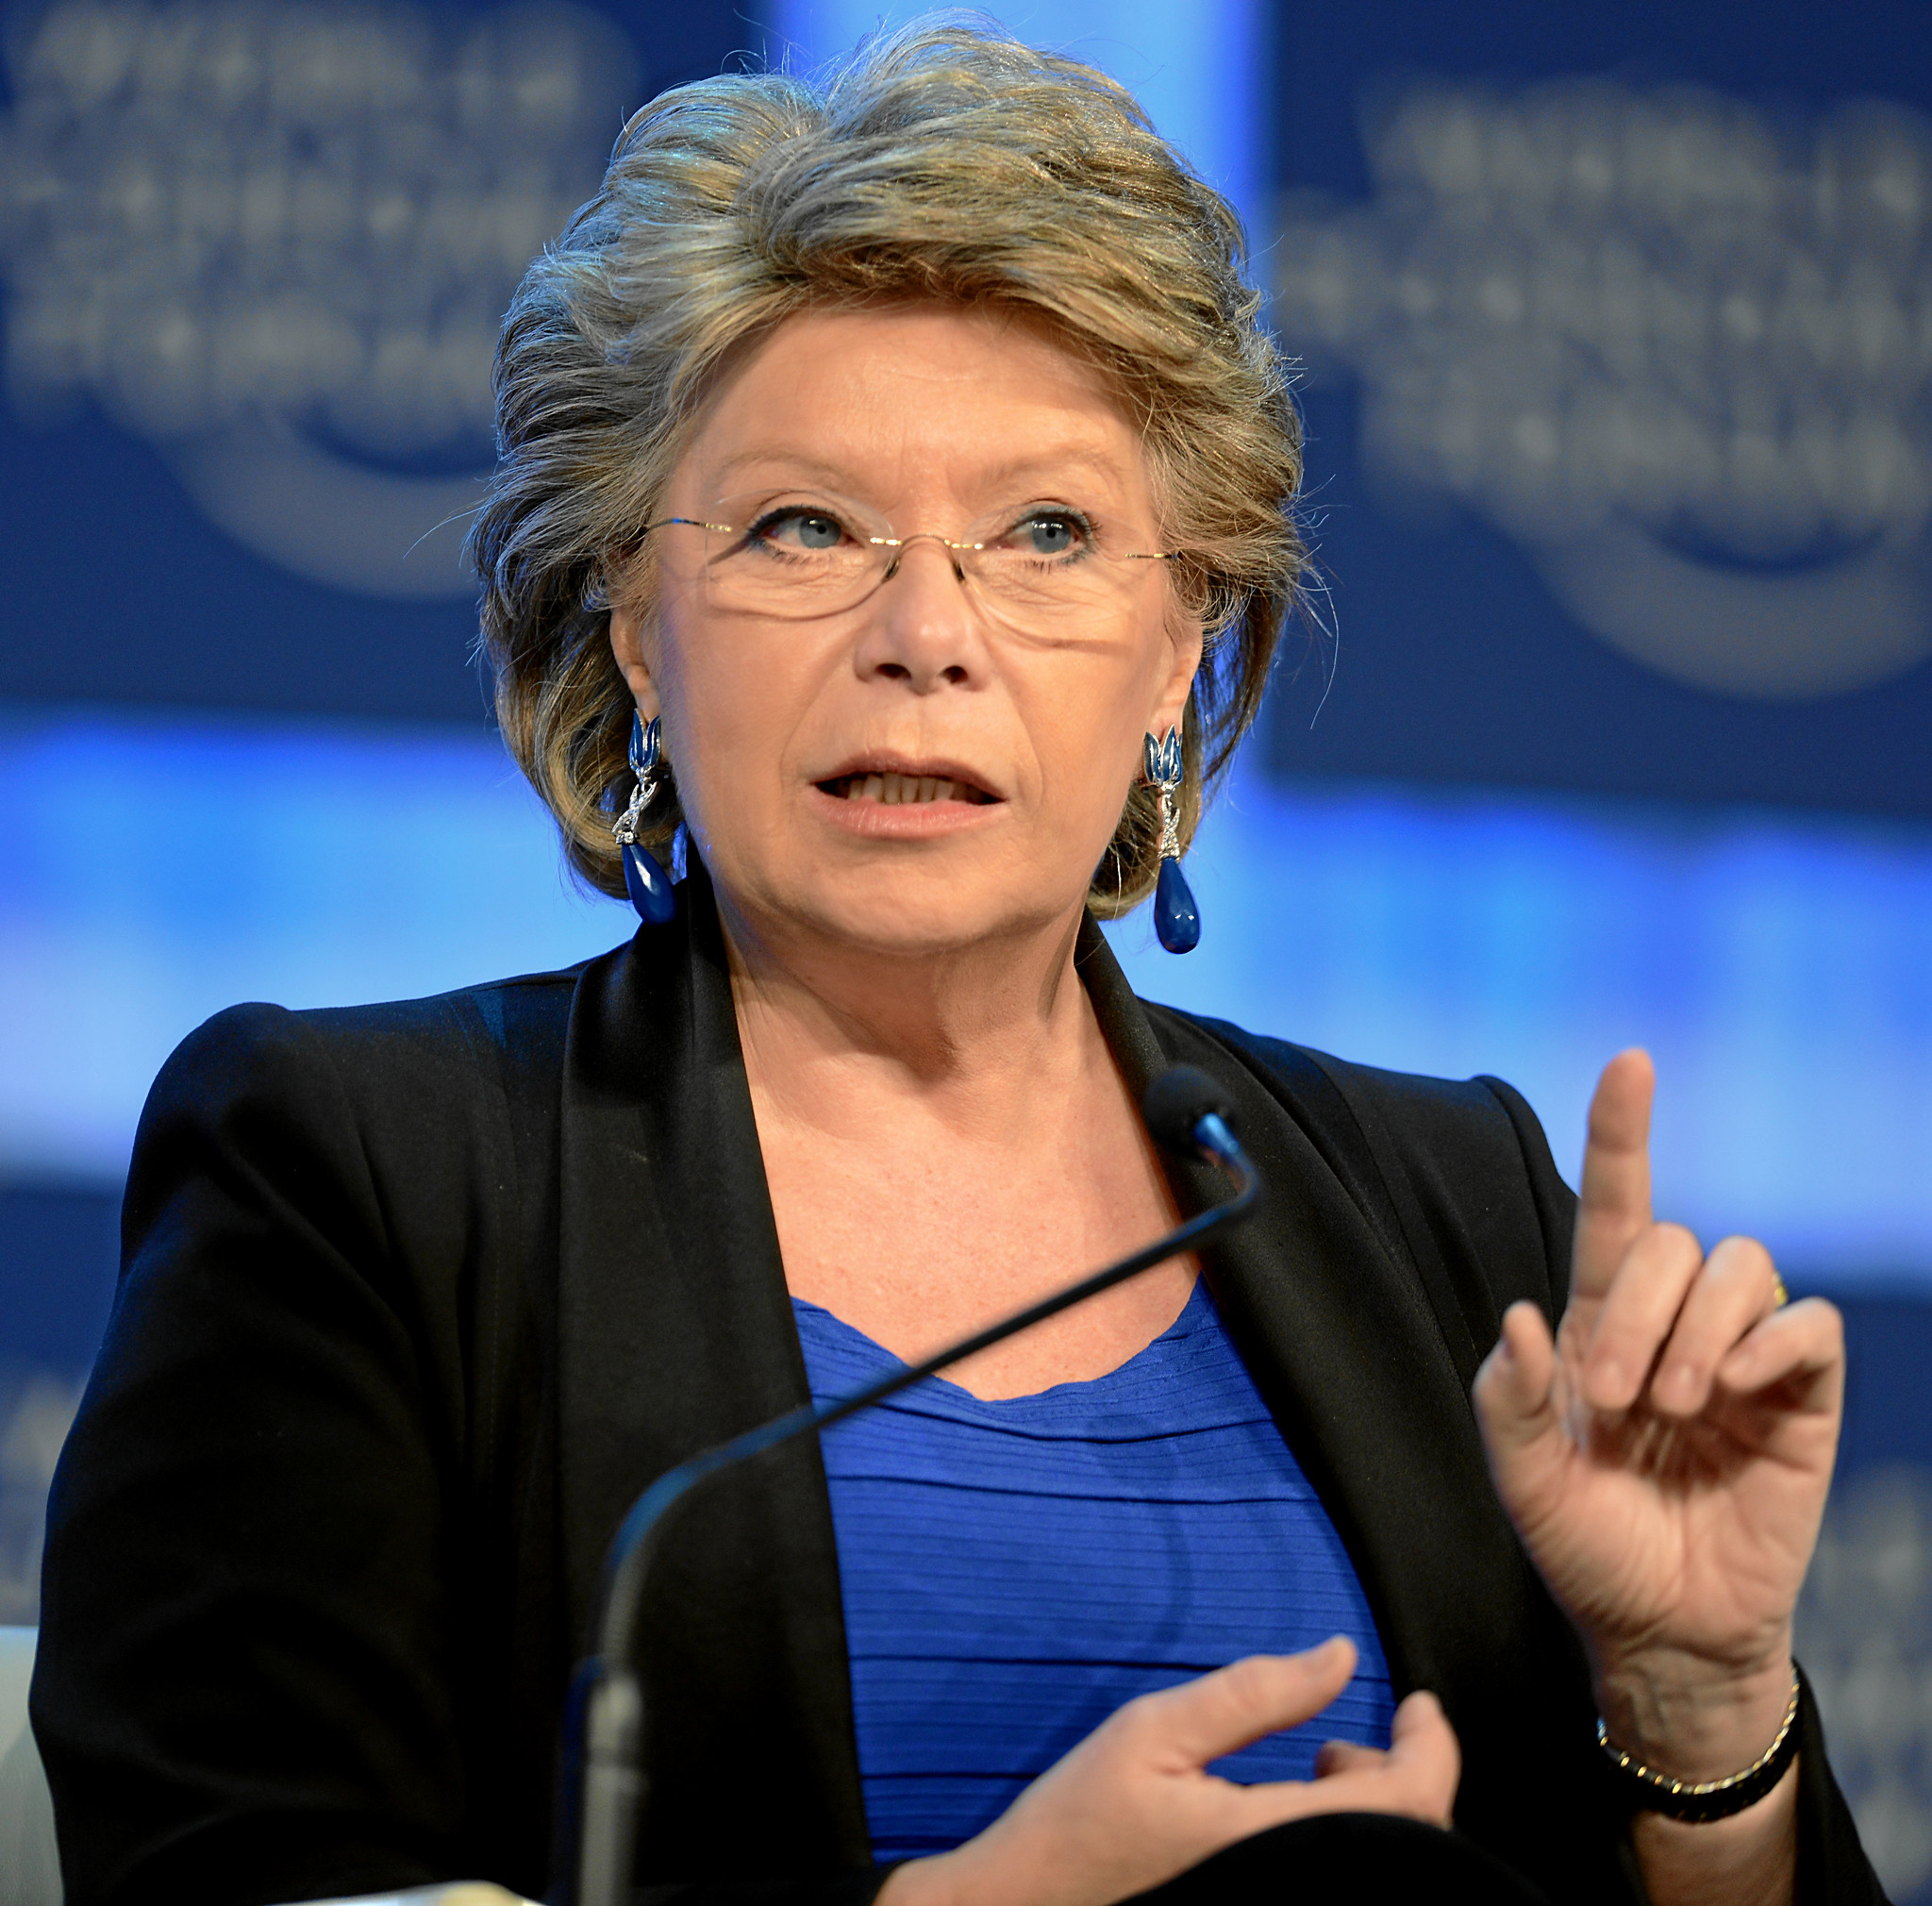 Women in Economic Decision-making: Viviane Reding